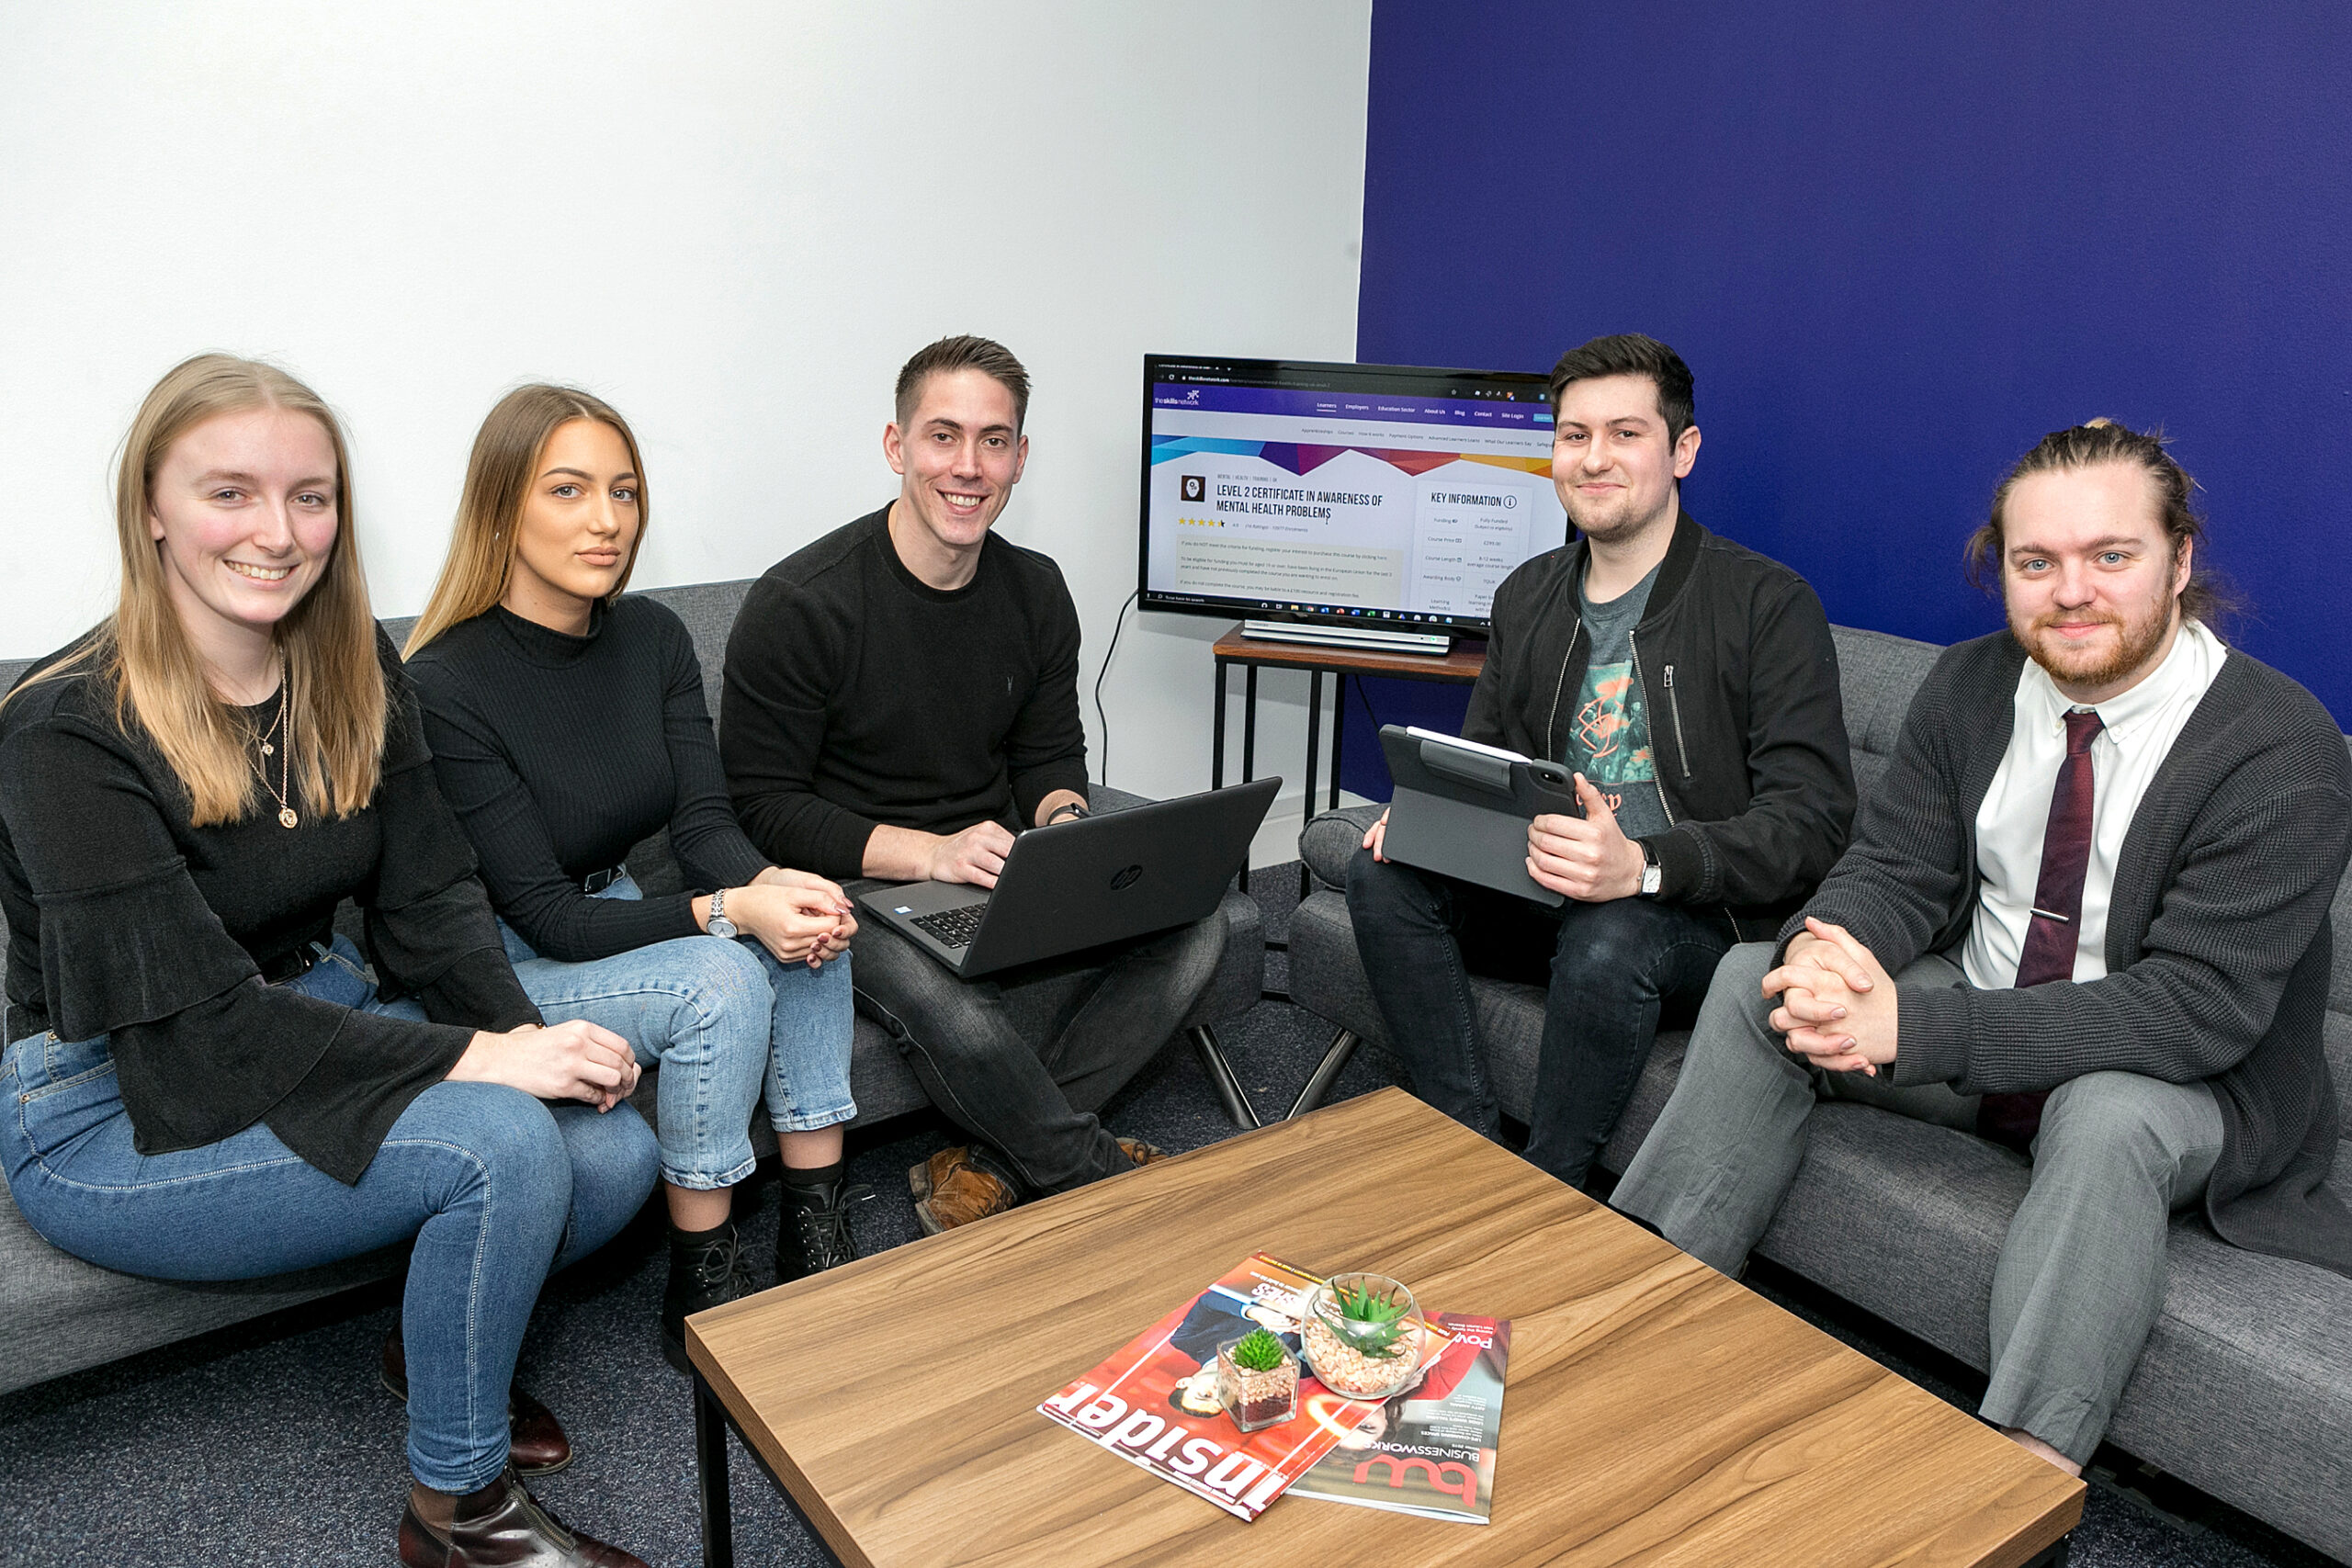 Deep Business Centre spreads the word about mental health in the workplace